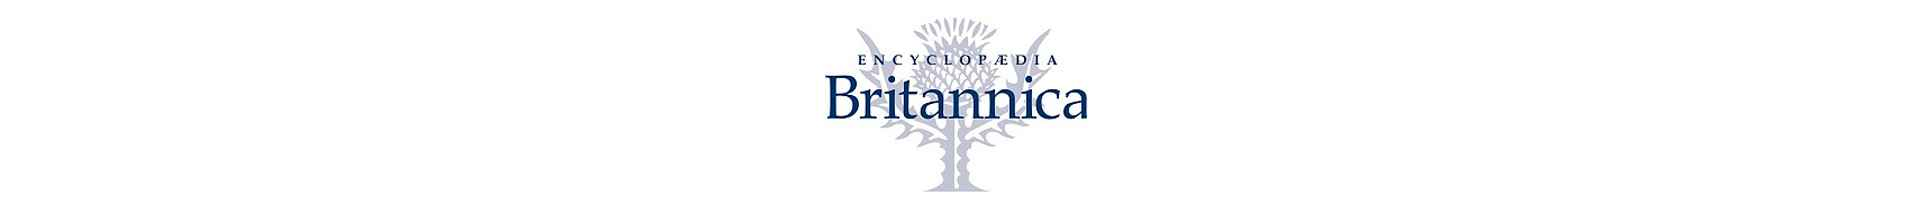 Collaboration of Darvideo and Encyclopedia Britannica